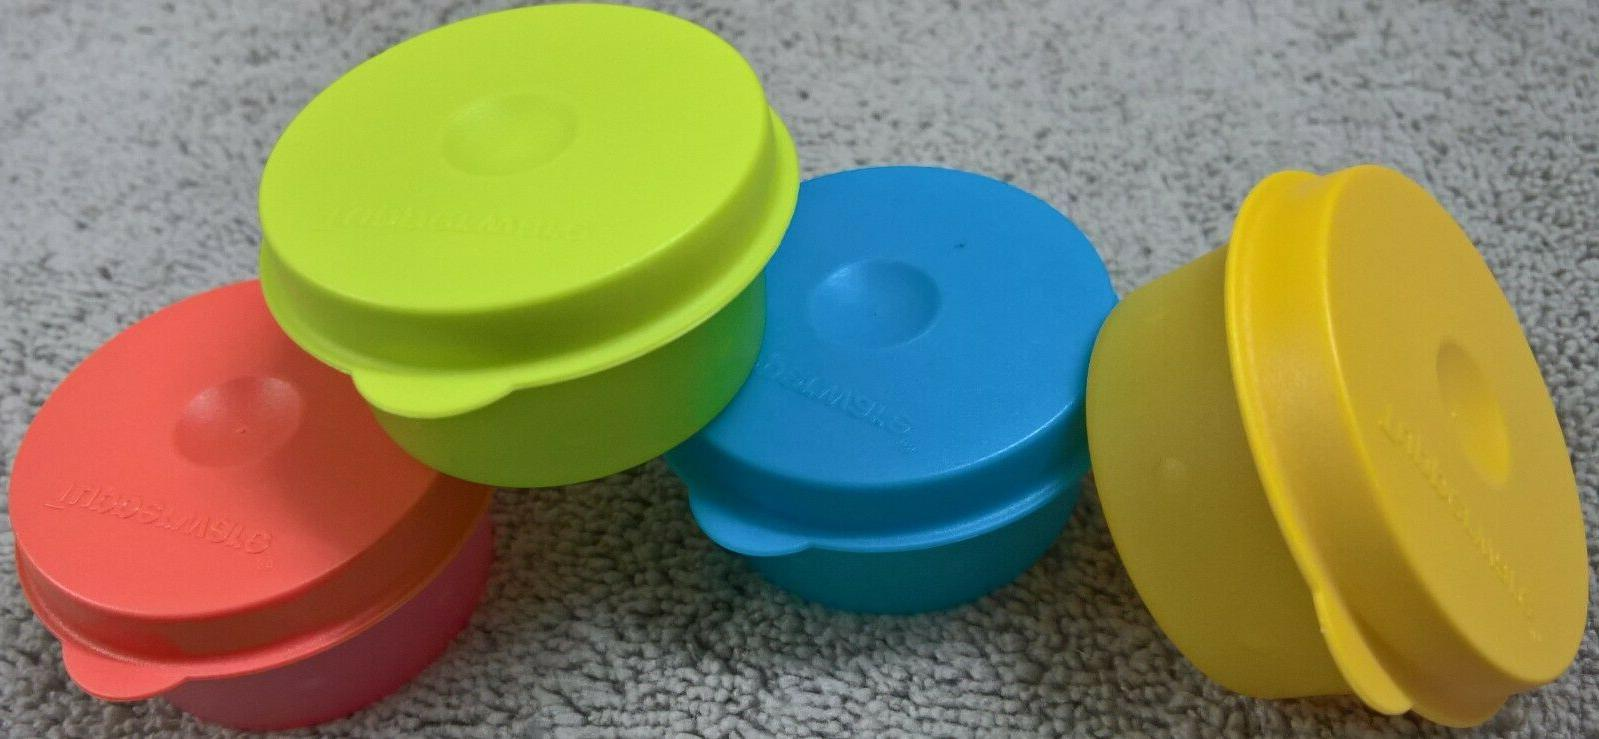 Tupperware - storage containers, LEFT